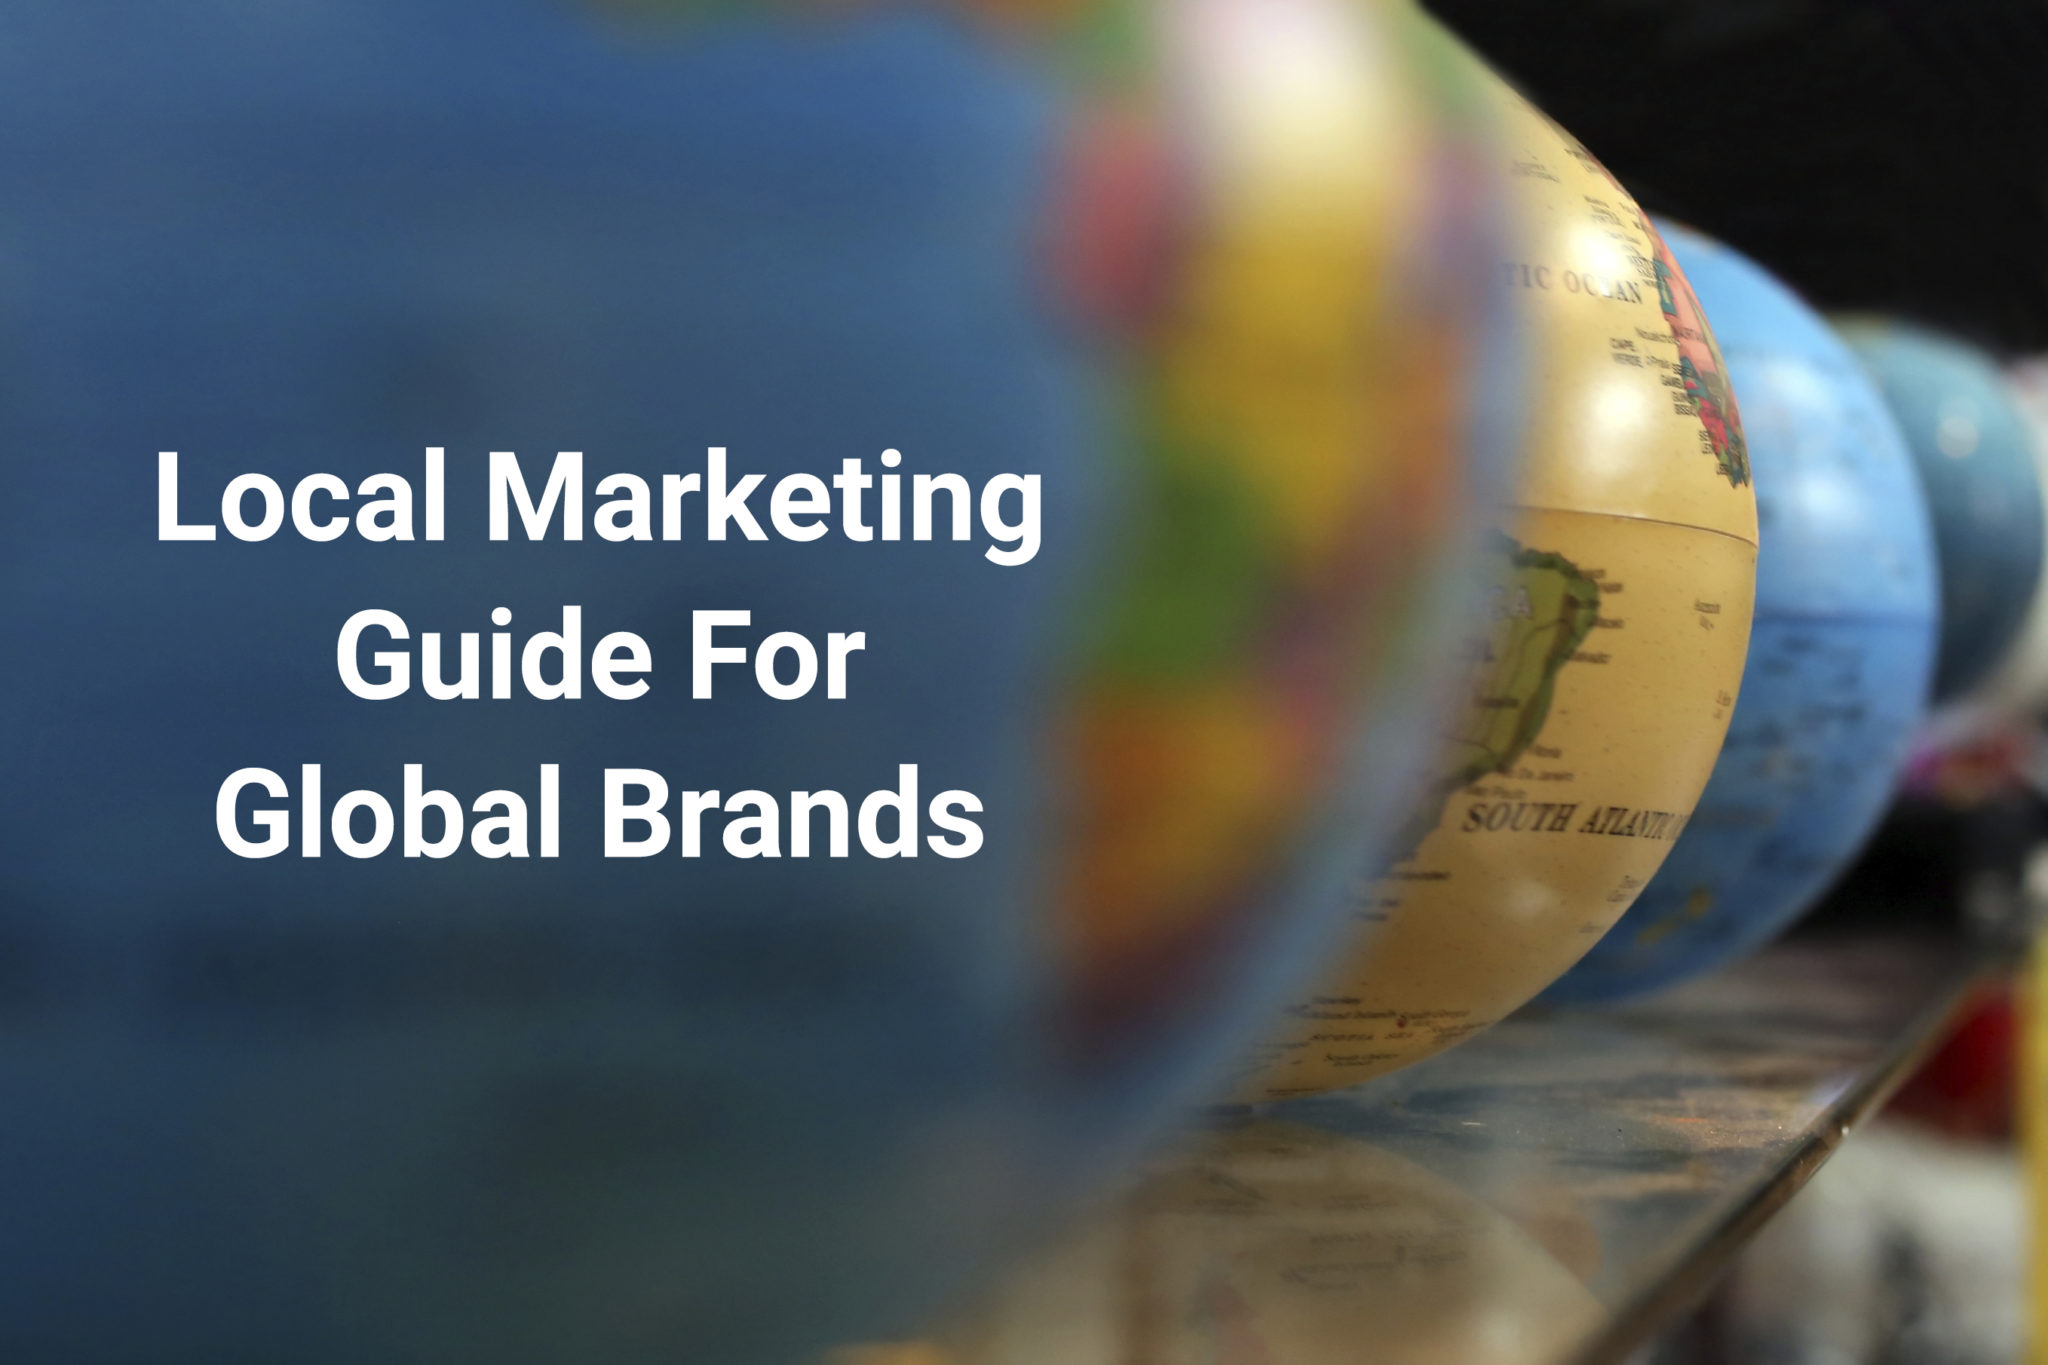 Local Marketing Guide For Global Brands